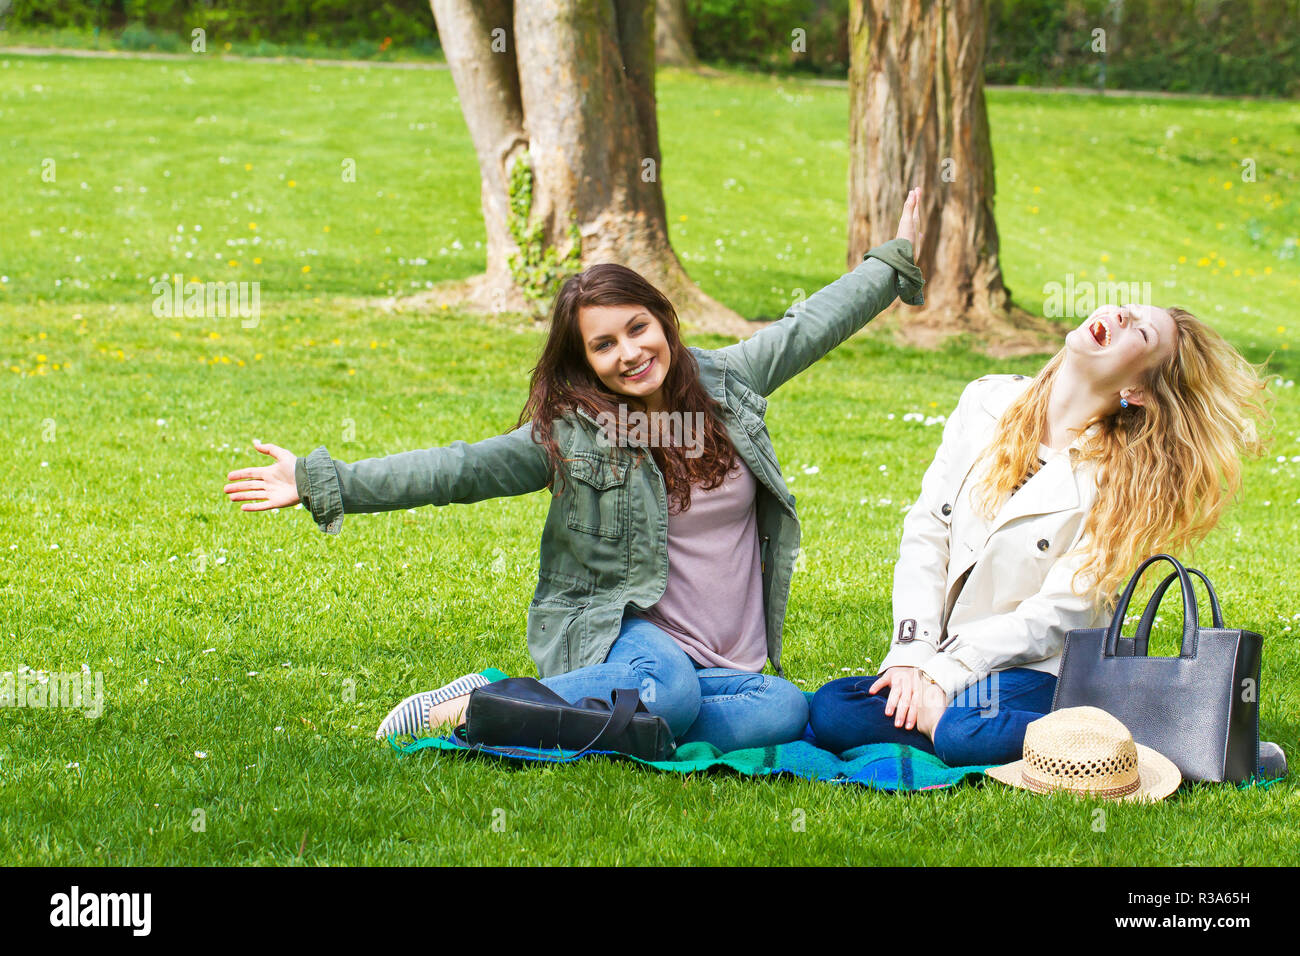 Fun dans le parc Photo Stock